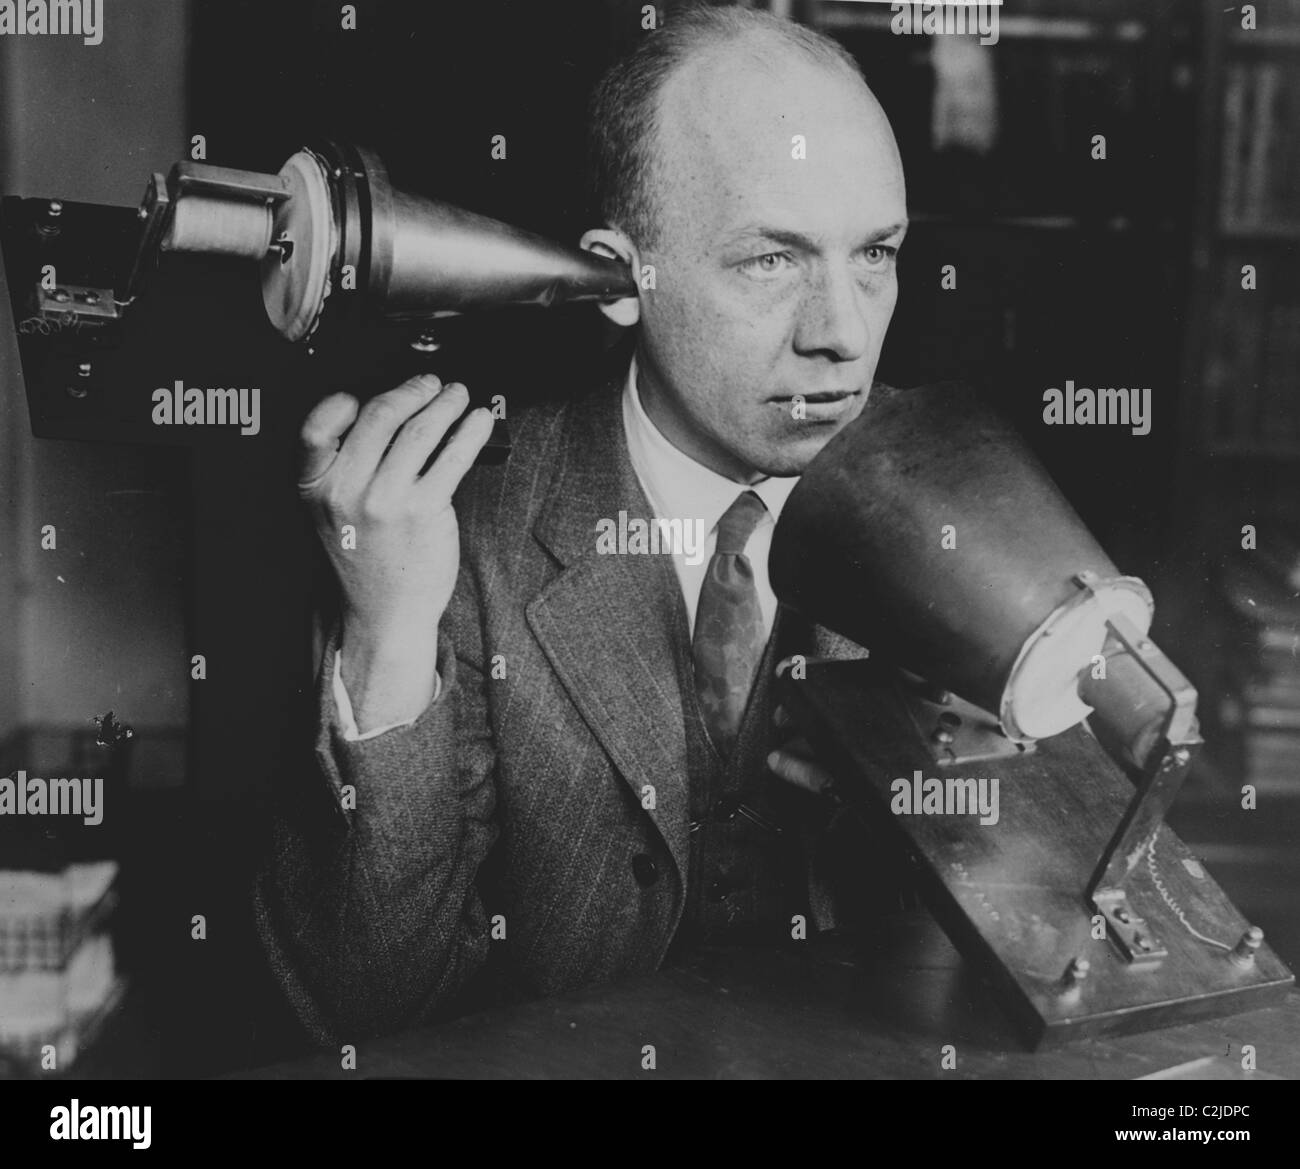 The First Telephone Stock Photos & The First Telephone Stock